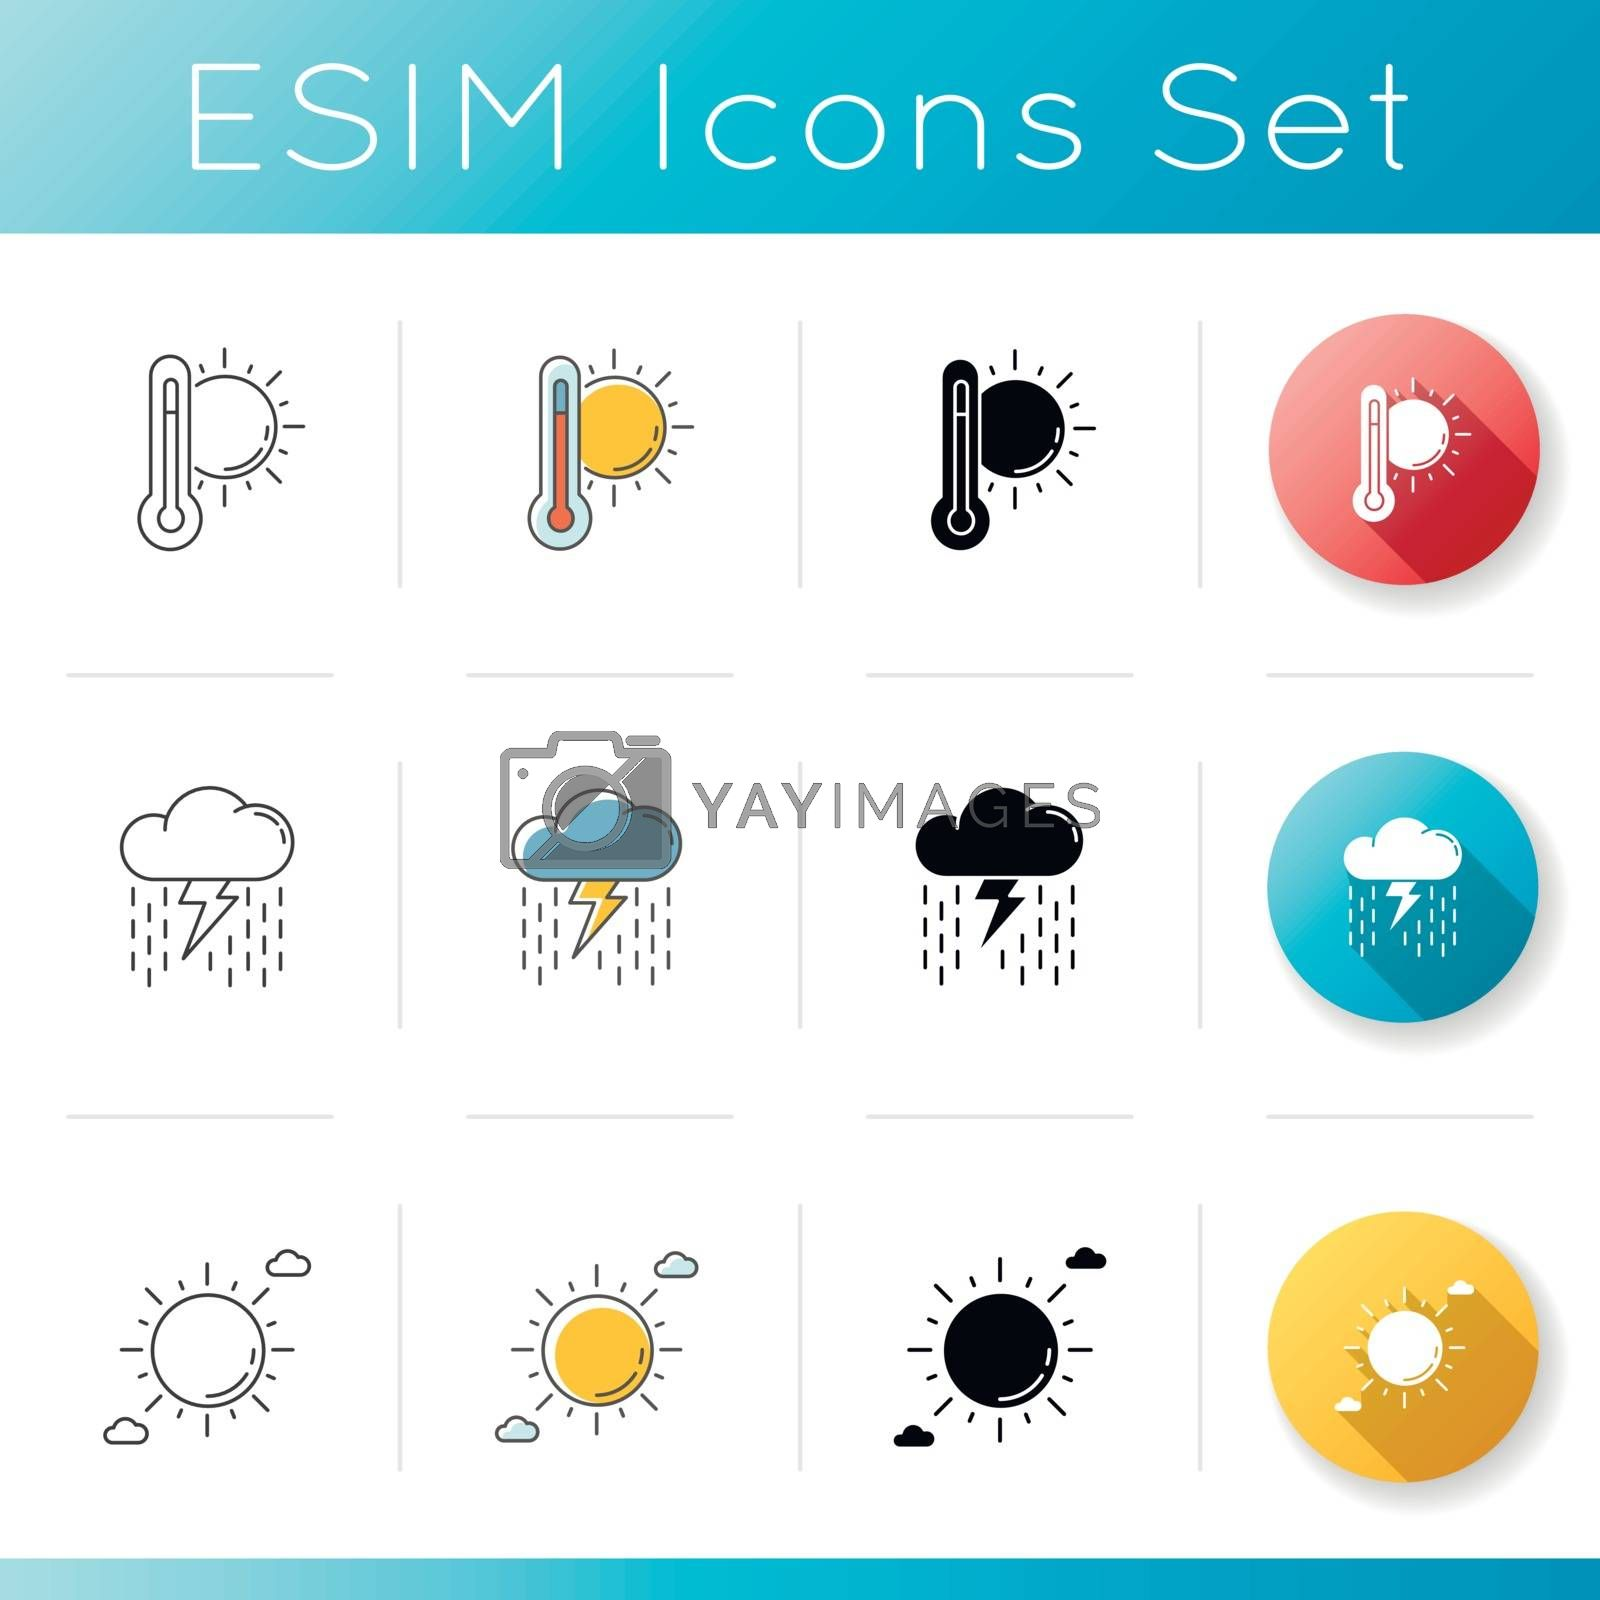 Summer weather icons set. Linear, black and RGB color styles. Meteorology, seasonal atmosphere condition. Hot temperature, heavy showers and clear sunny sky. Isolated vector illustrations